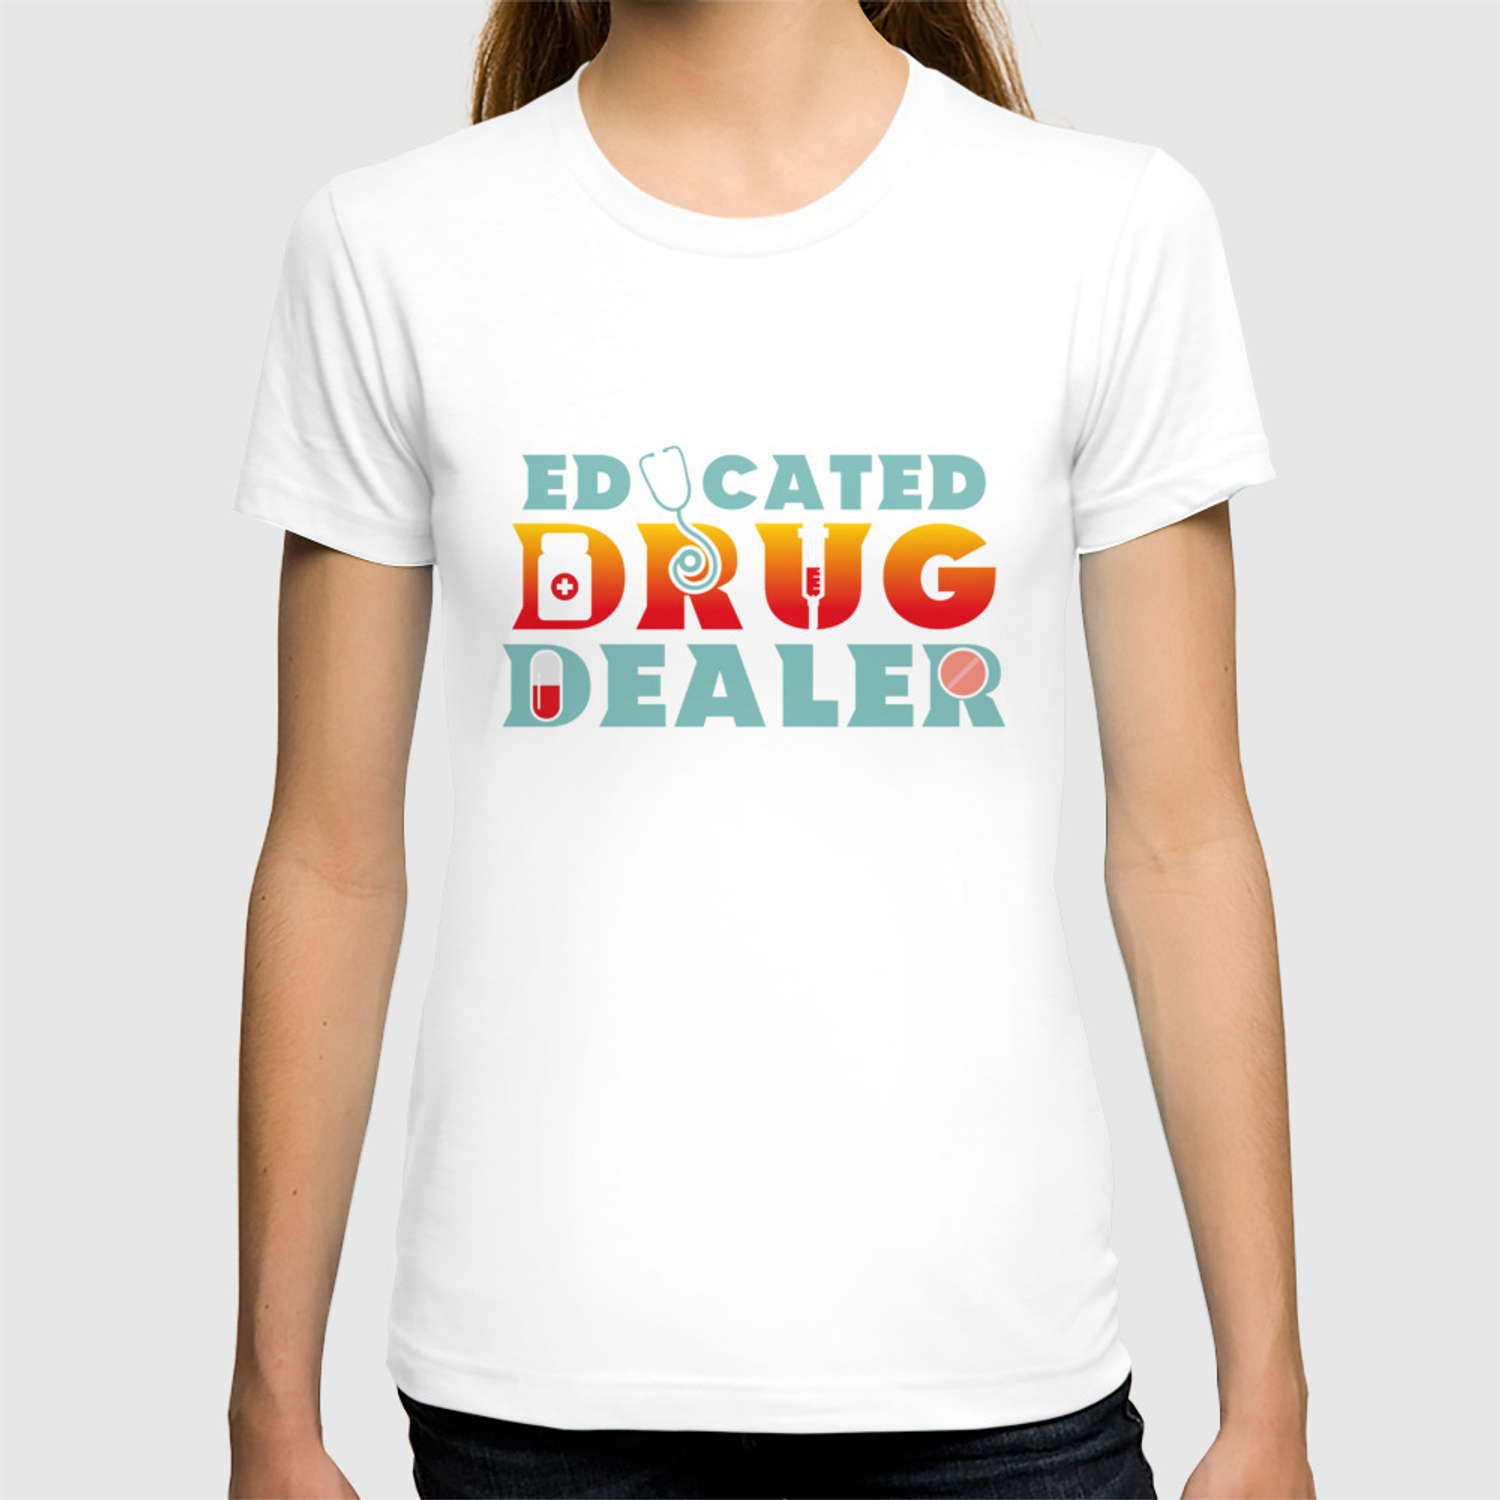 01eac1f605 Educated Drug Dealer Funny Pharmacists - Funny Pharmacists Pun Gift T-shirt  by yeoys | Society6